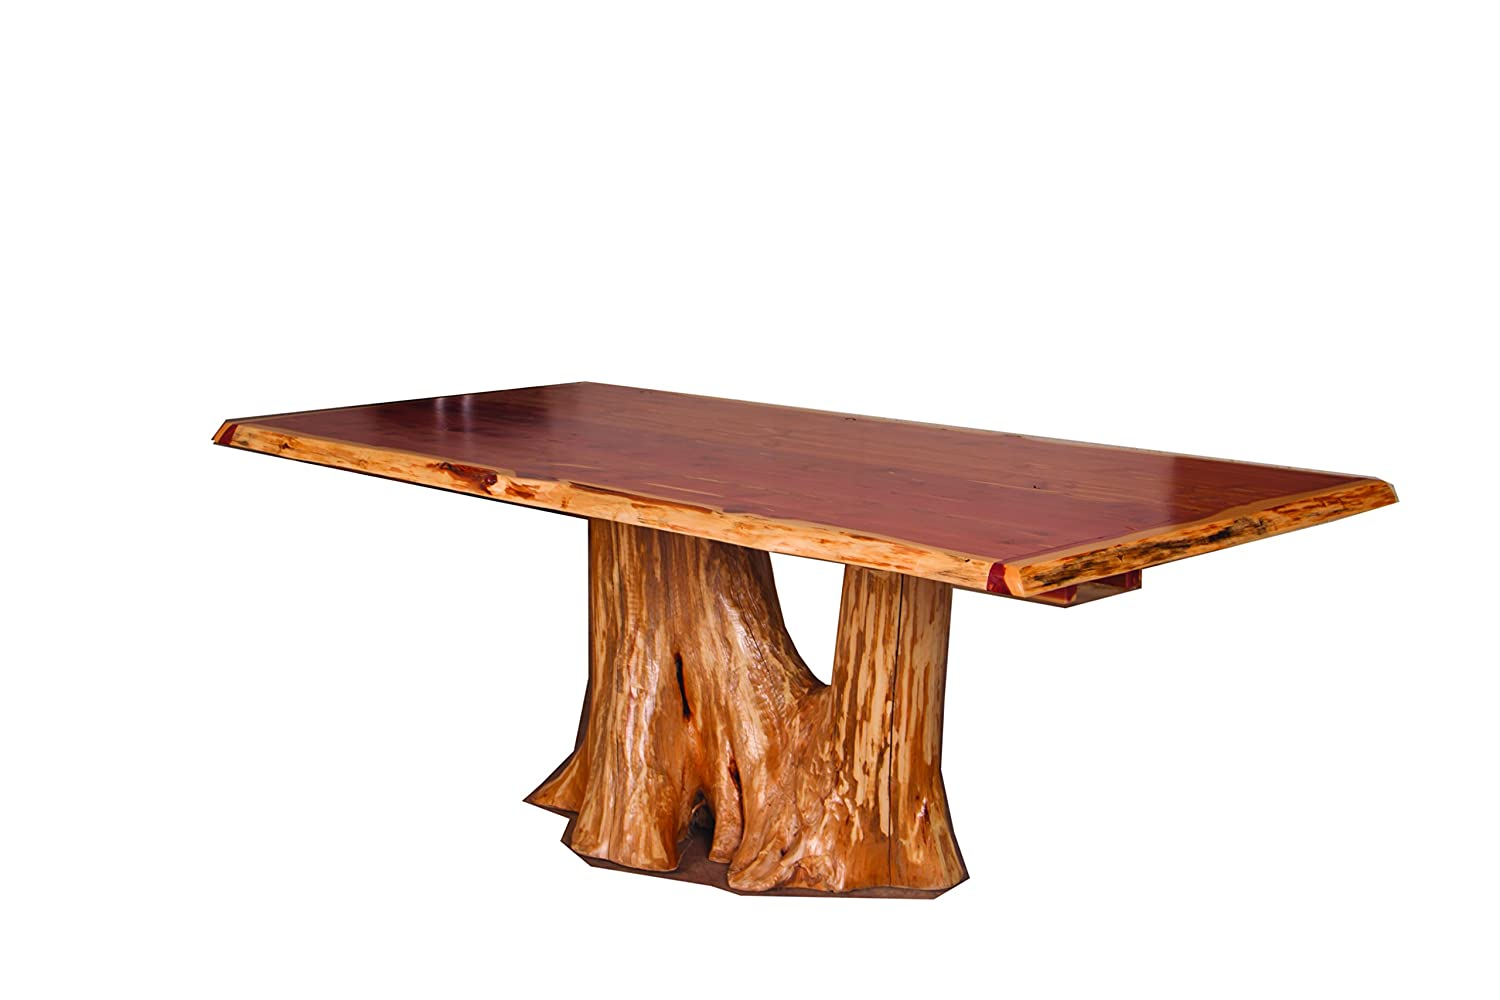 Amazon.com : Rustic Red Cedar Log Stump Dining Table with 10 ...